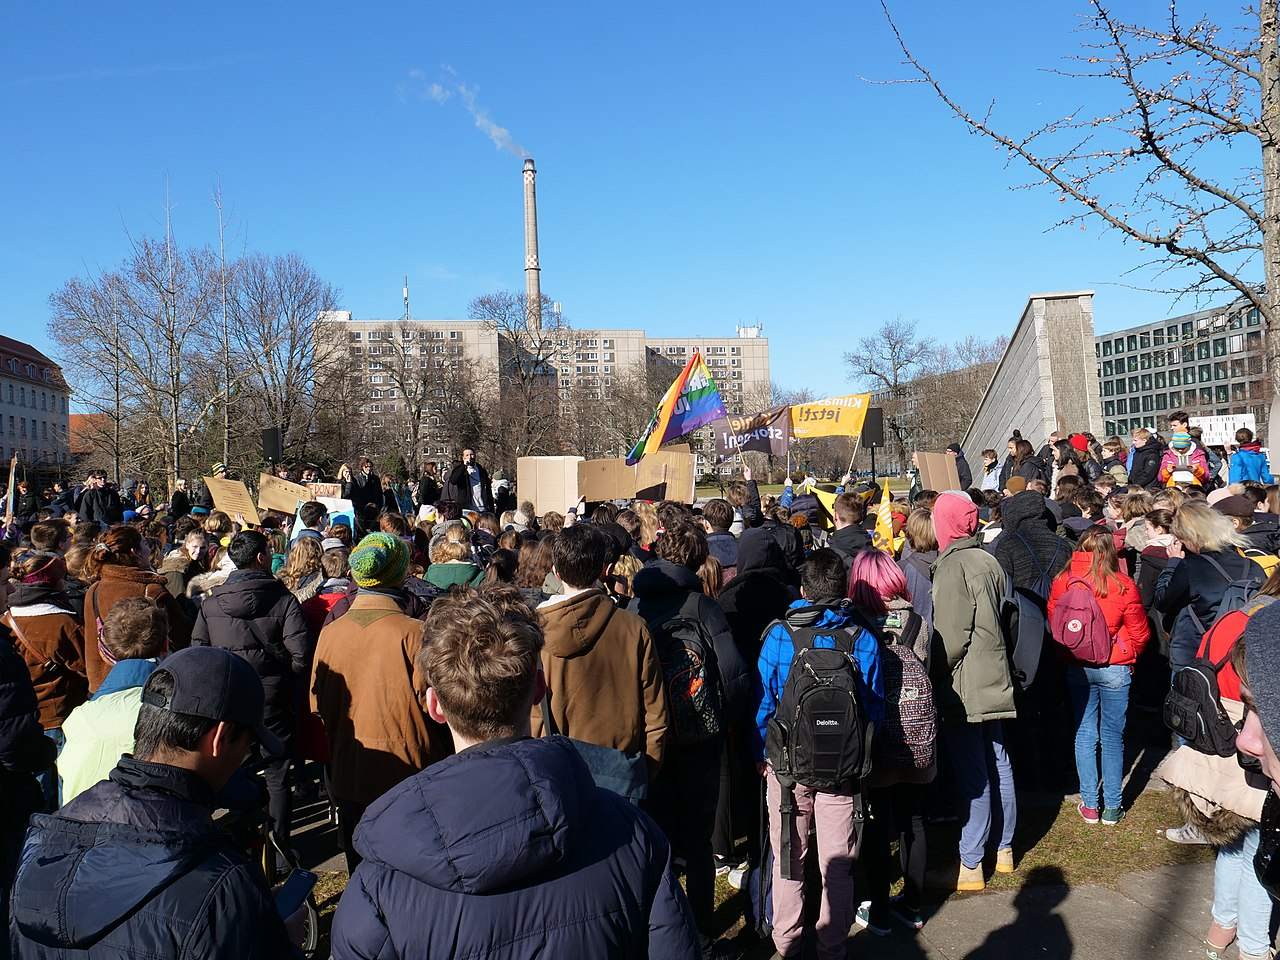 FridaysForFuture protest Berlin 22-02-2019 33.jpg